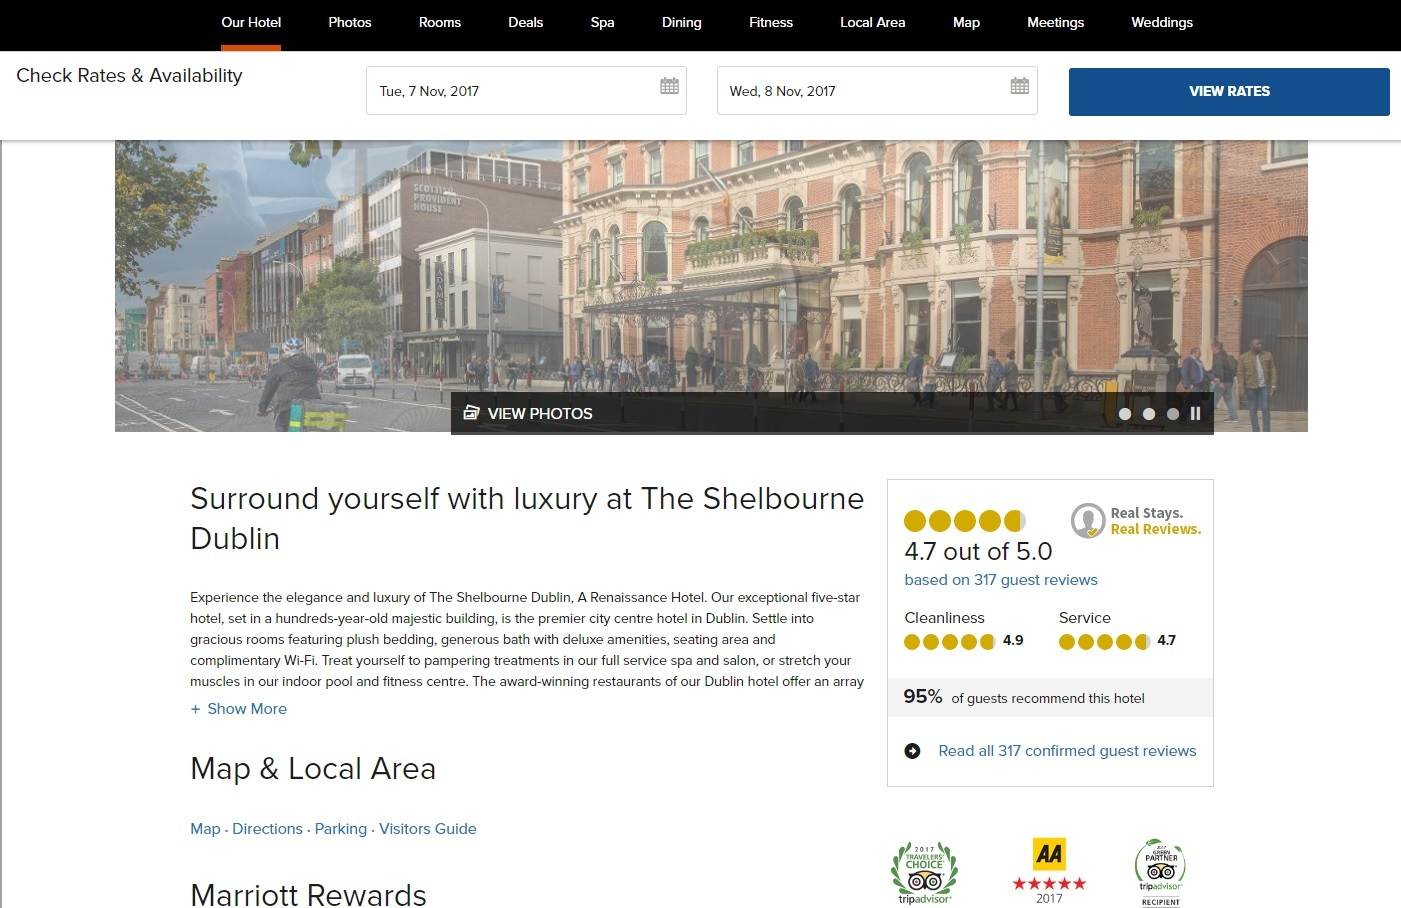 Shelbourne-Hotel-reviews-page.jpg?mtime=20171109093733#asset:670